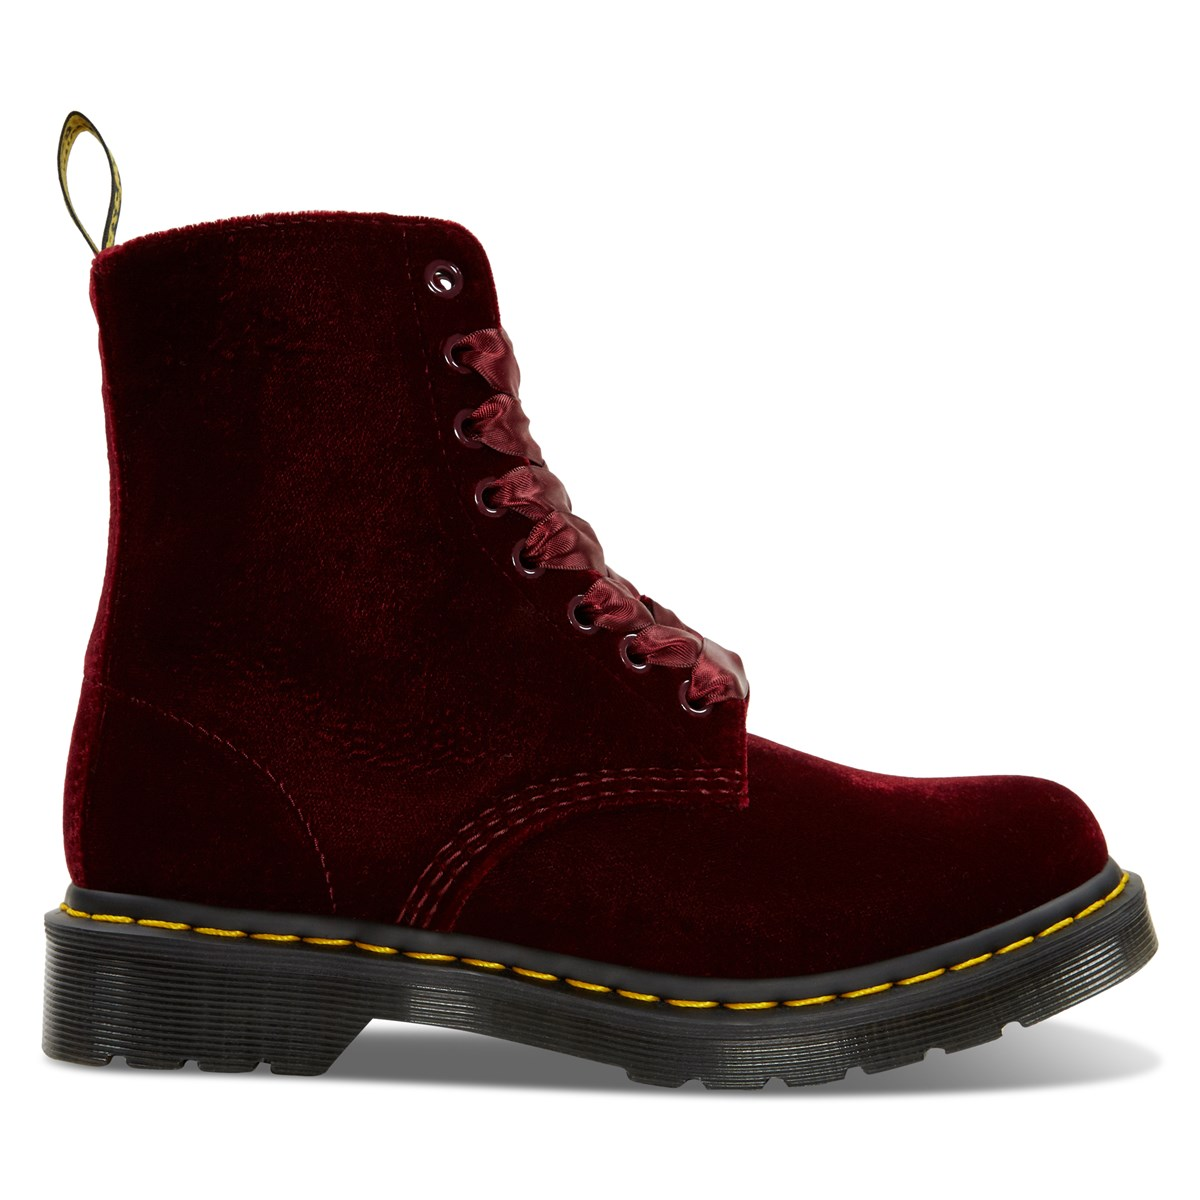 Women's 1460 Pascal Virginia Velvet Boots in Cherry Red